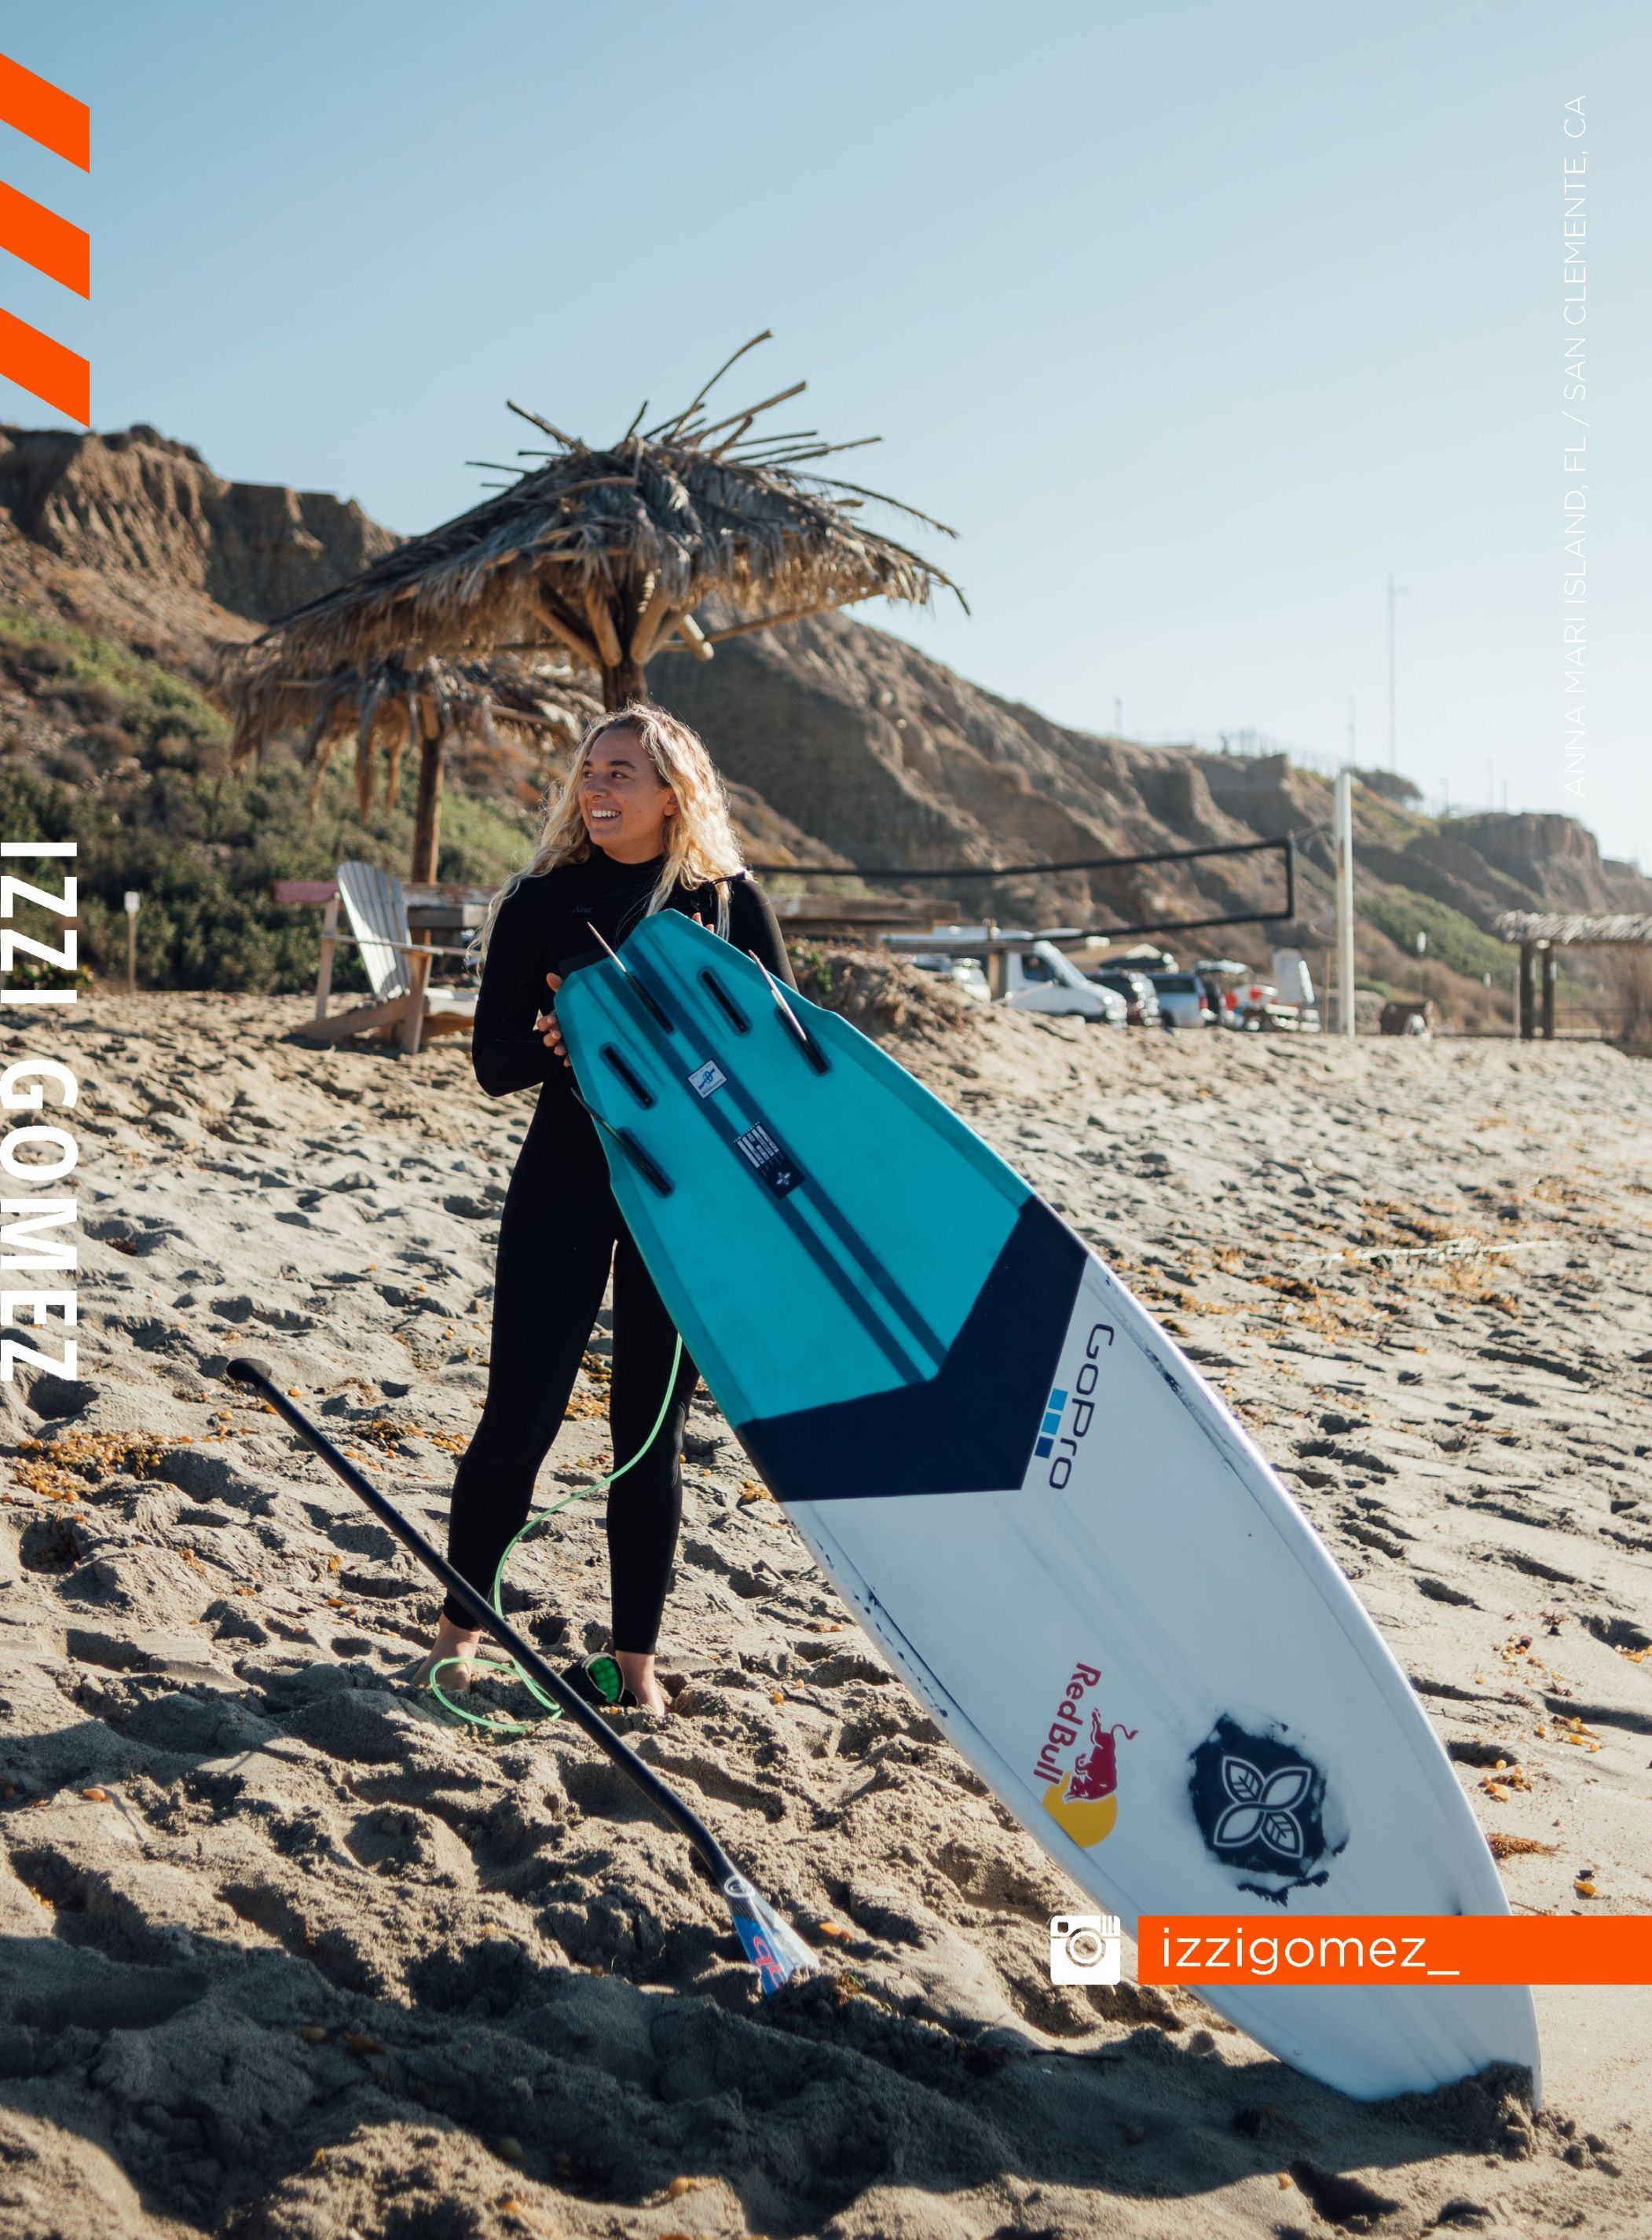 Member of the Infinity Surf Team Izzi Gomez